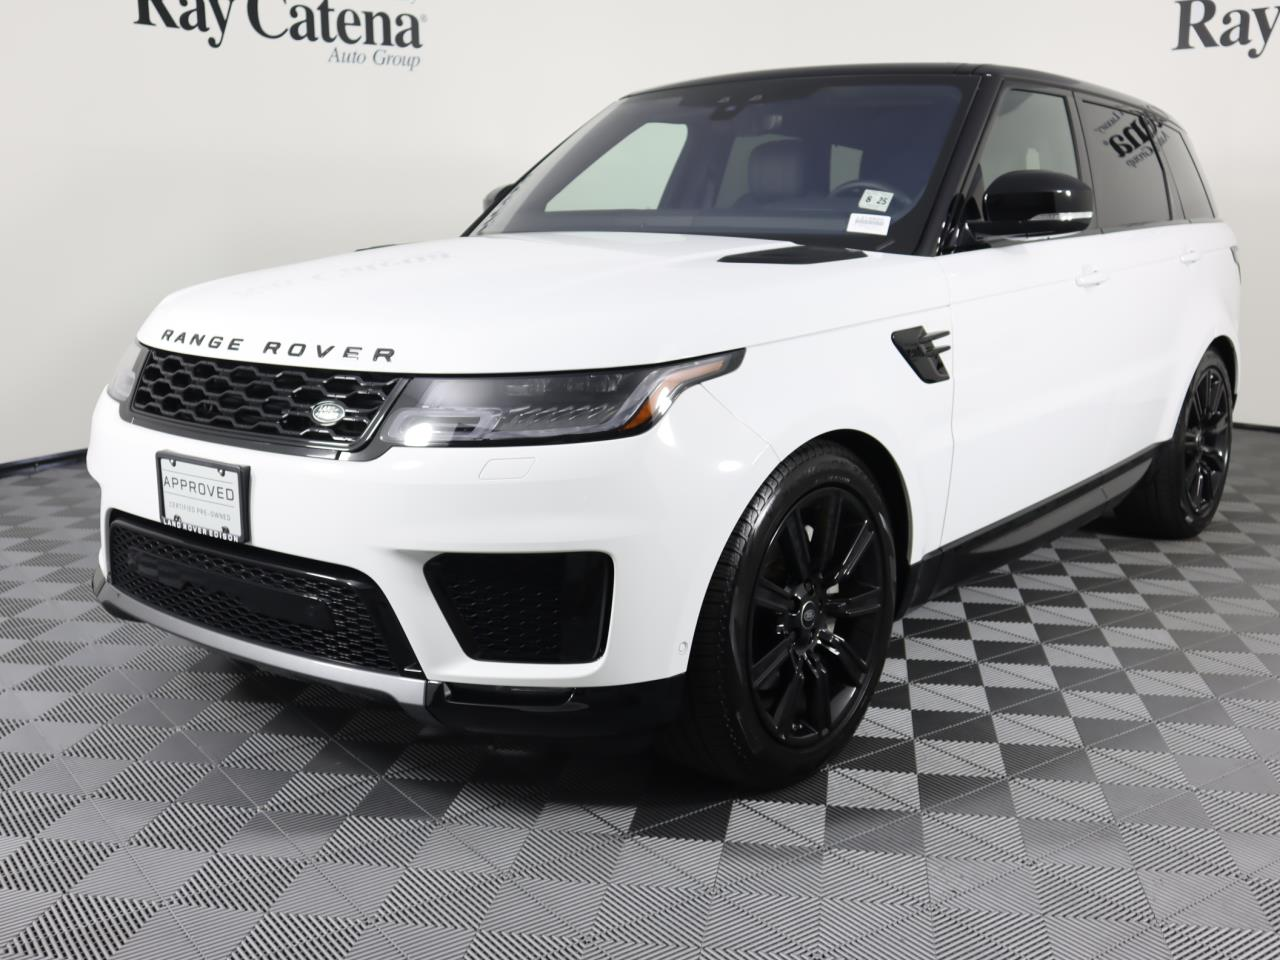 Certified Pre-Owned 2020 Land Rover Range Rover Sport HSE Td6